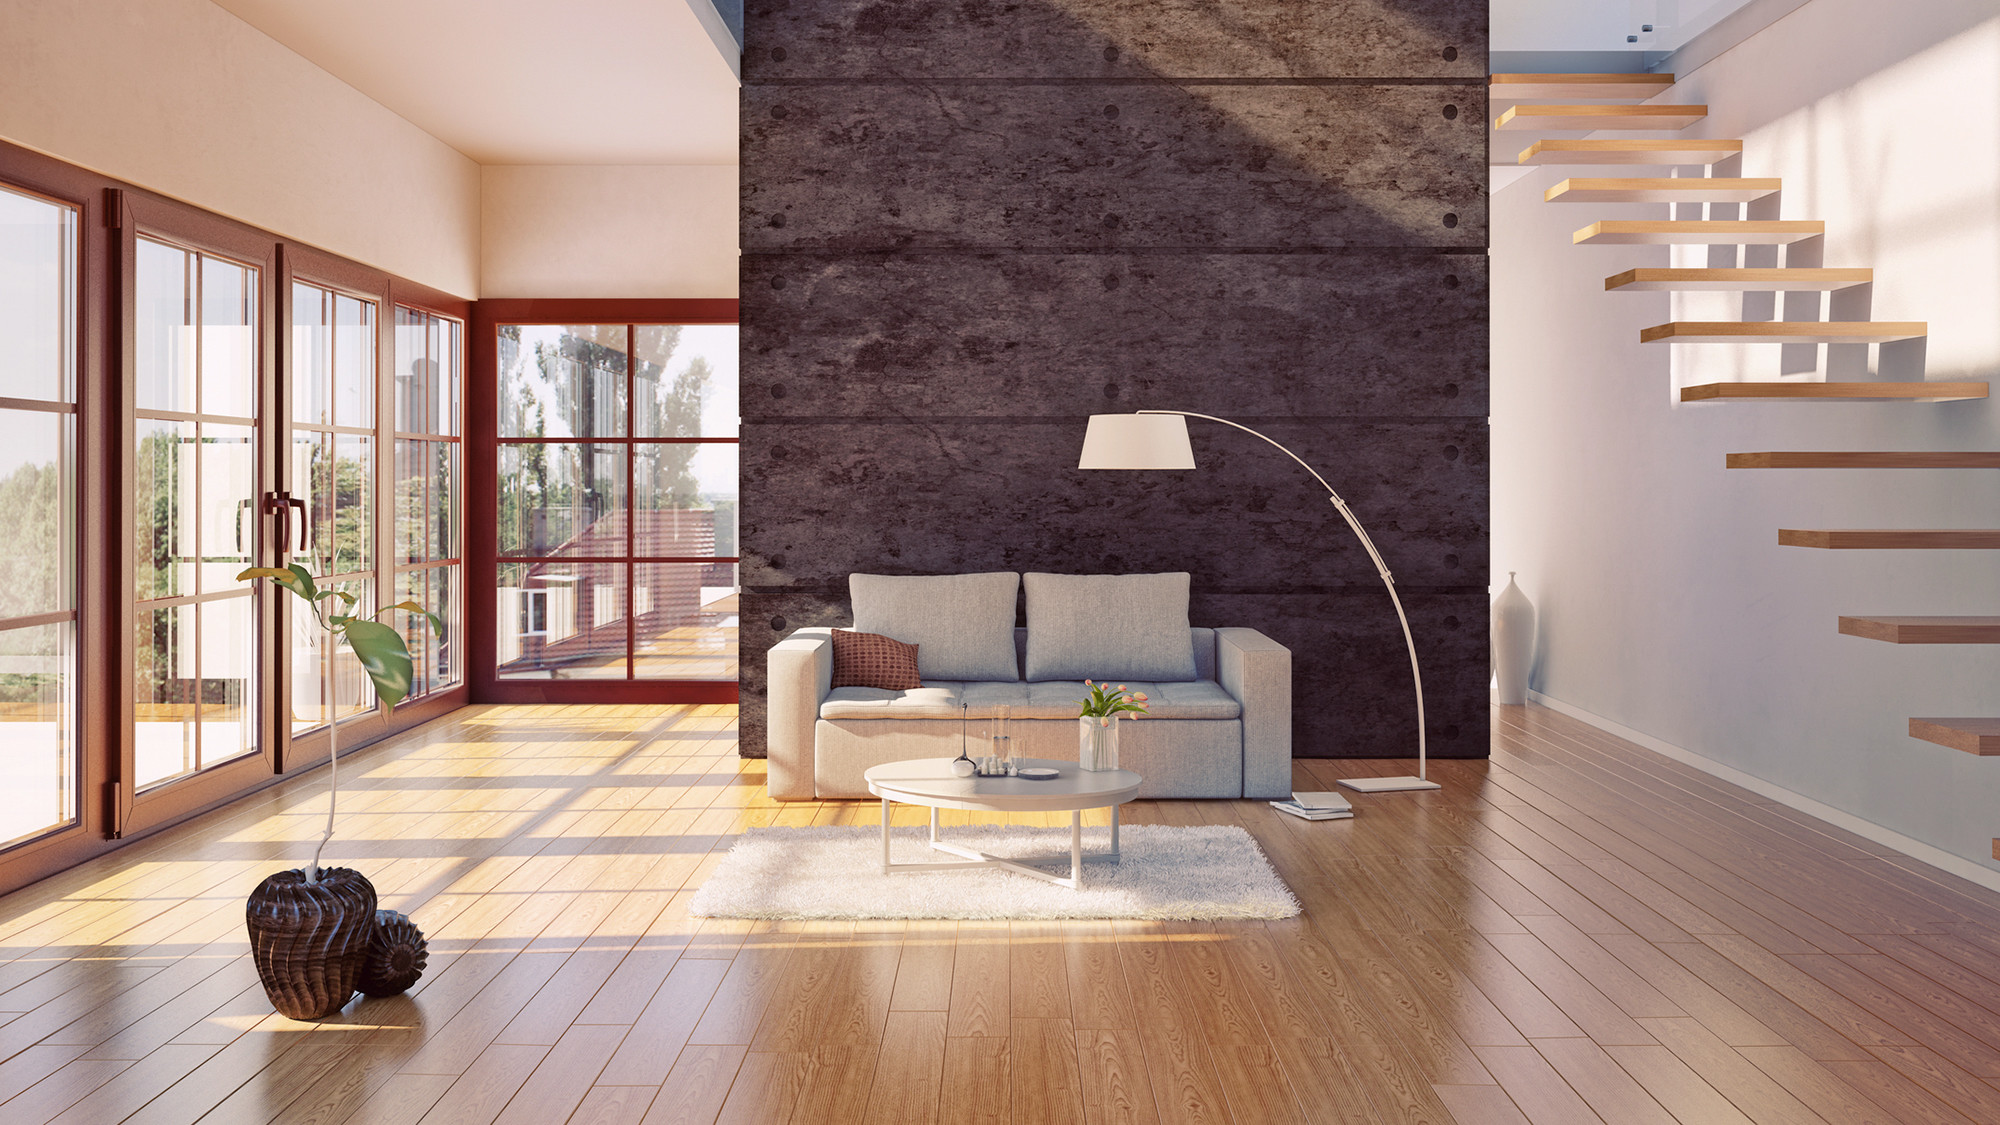 types of engineered hardwood flooring of do hardwood floors provide the best return on investment realtor coma with hardwood floors investment